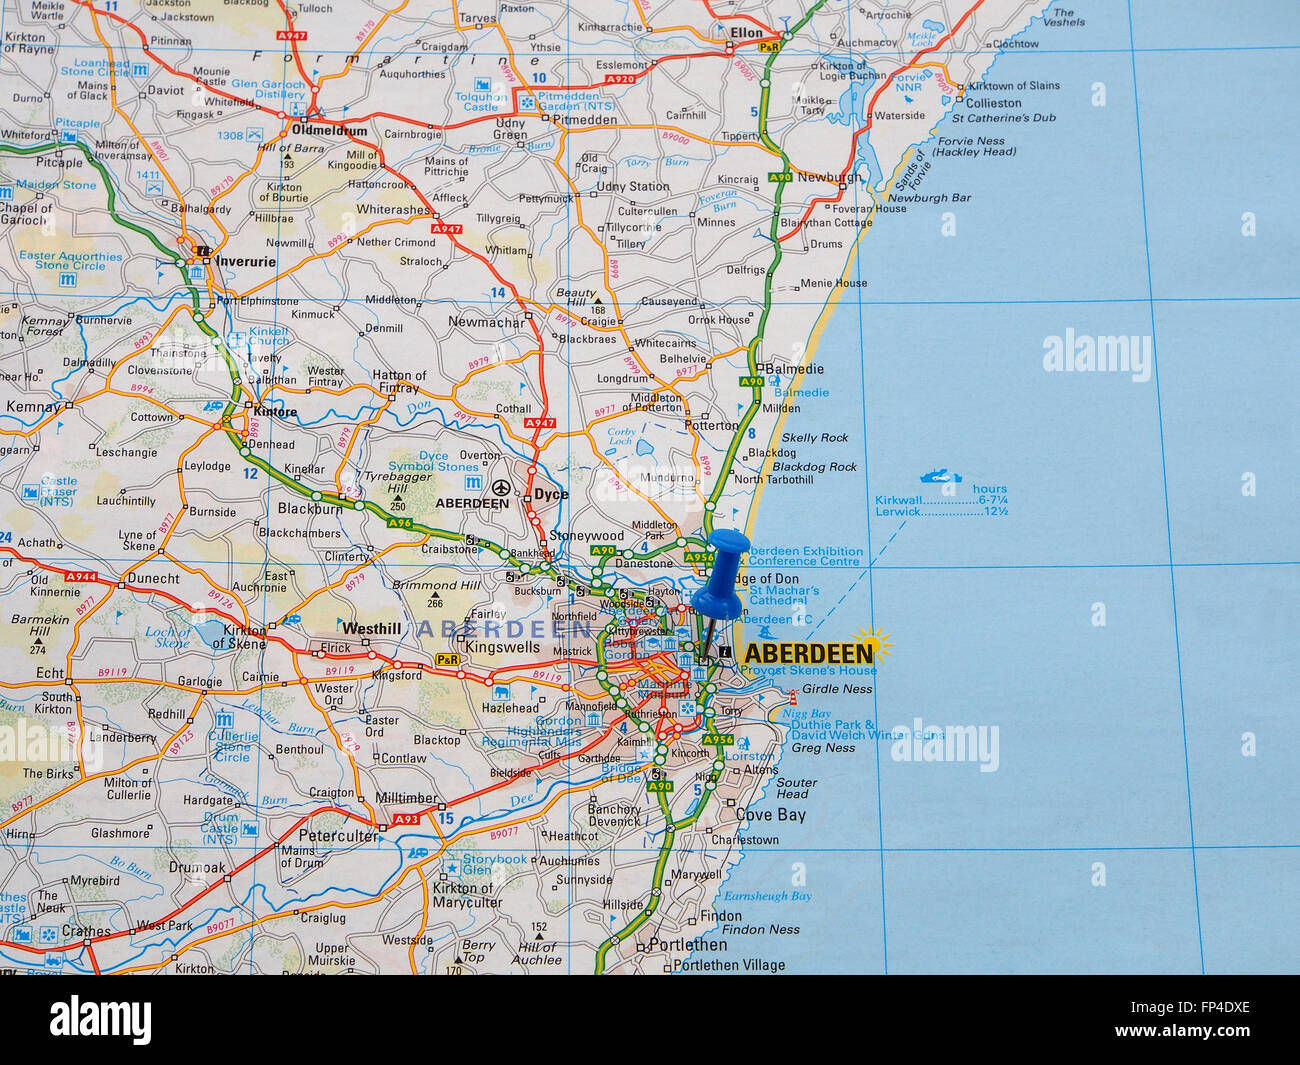 Map North East Coast Britain Fotos E Imagenes De Stock Alamy